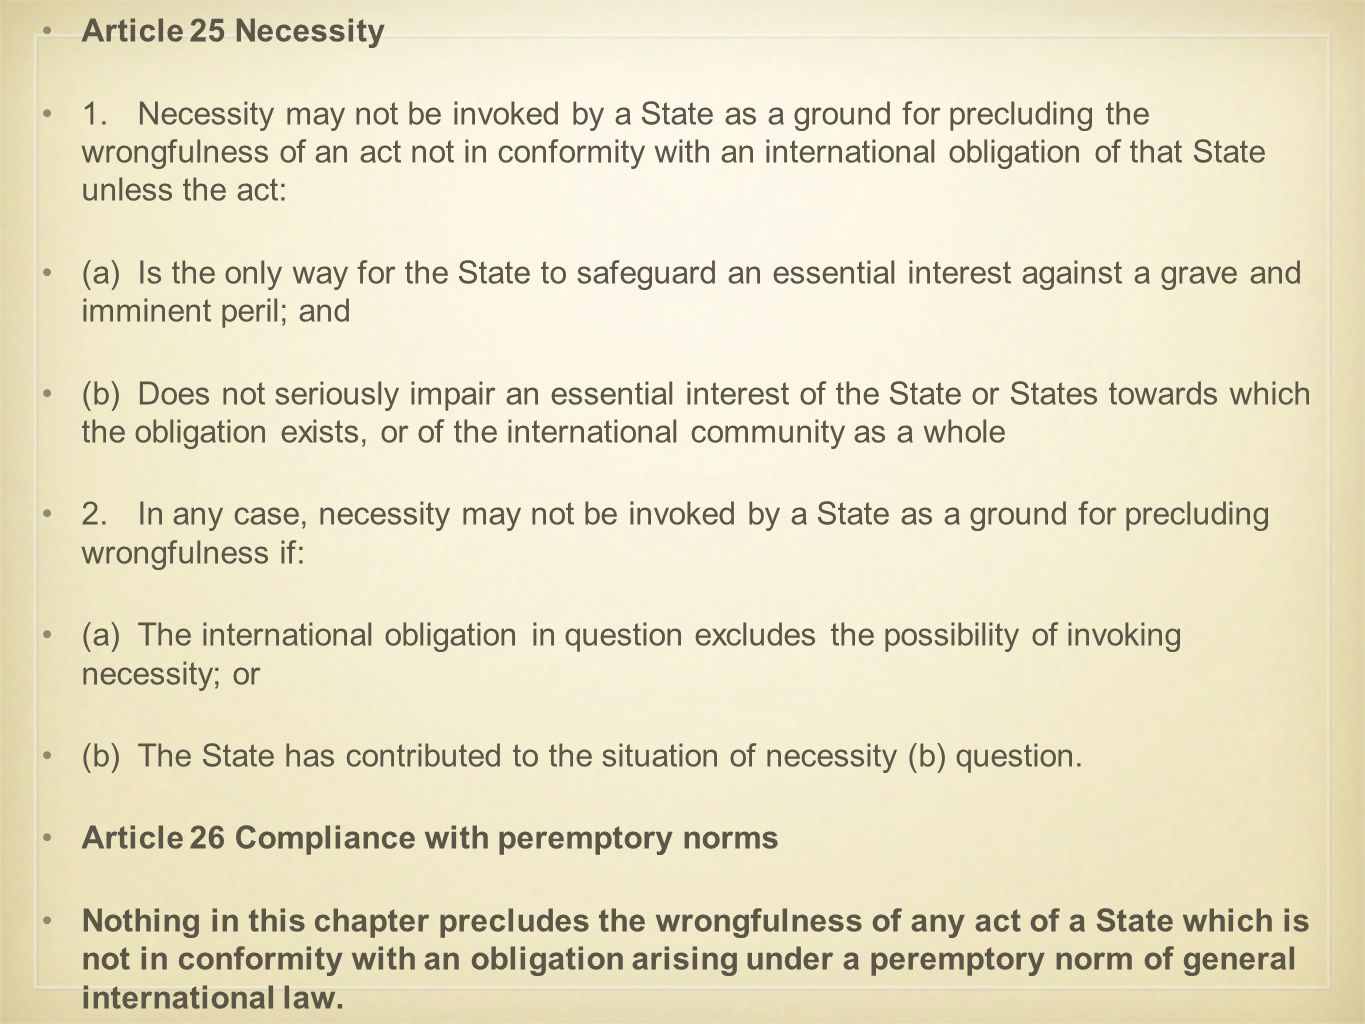 Article 25 Necessity 1.Necessity may not be invoked by a State as a ground for precluding the wrongfulness of an act not in conformity with an international obligation of that State unless the act: (a)Is the only way for the State to safeguard an essential interest against a grave and imminent peril; and (b)Does not seriously impair an essential interest of the State or States towards which the obligation exists, or of the international community as a whole 2.In any case, necessity may not be invoked by a State as a ground for precluding wrongfulness if: (a)The international obligation in question excludes the possibility of invoking necessity; or (b)The State has contributed to the situation of necessity (b) question.